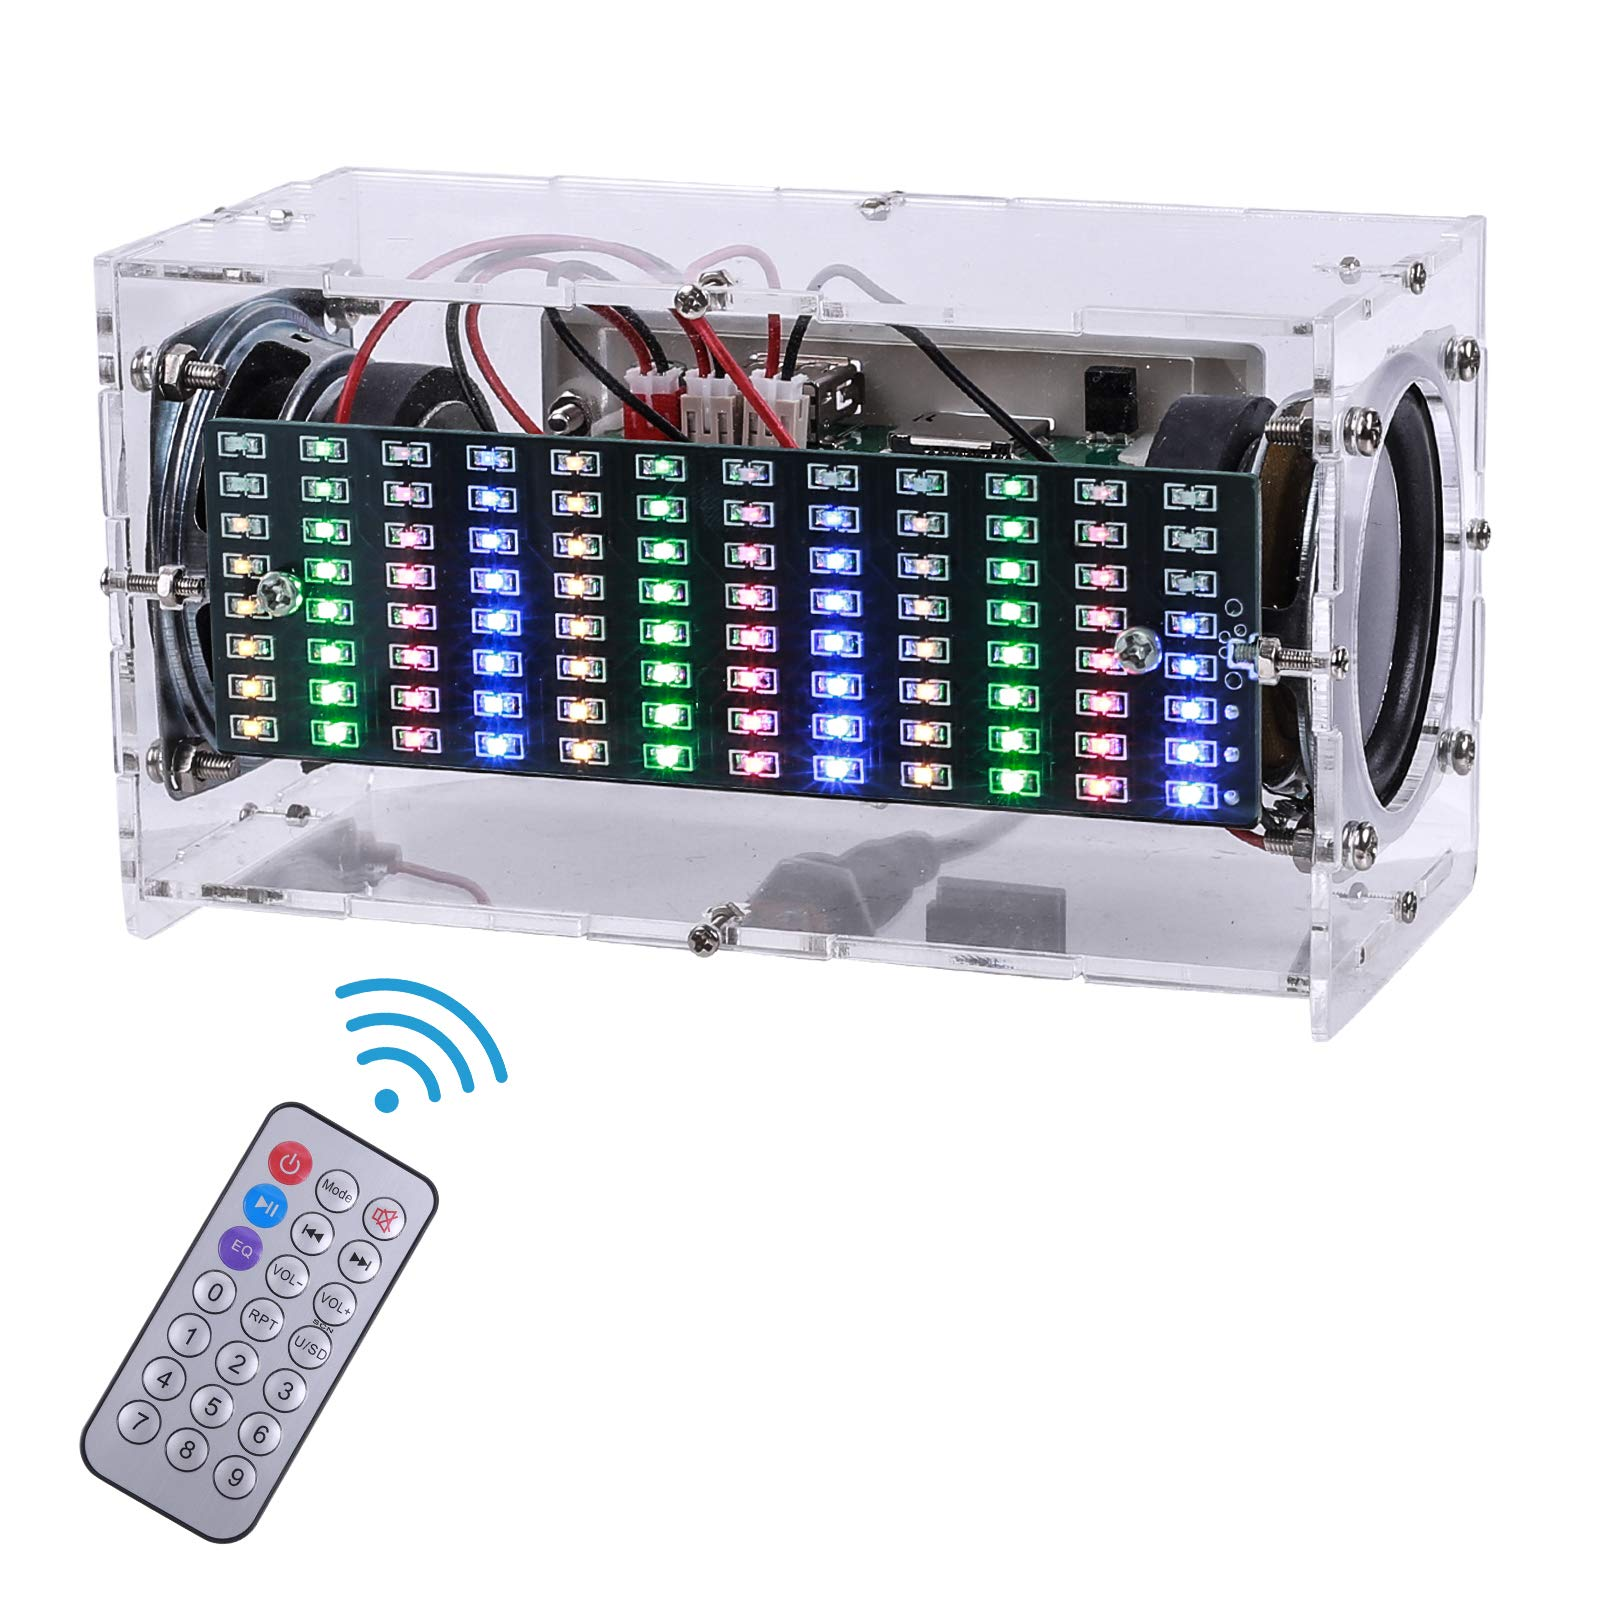 MiOYOOW Bluetooth Speaker Kit DIY Soldering Project Spectrum USB Mini Electronic Sound Amplifier Home Stereo Speaker DIY Kits for Leaning Soldering Home and School Education (Spectrum)